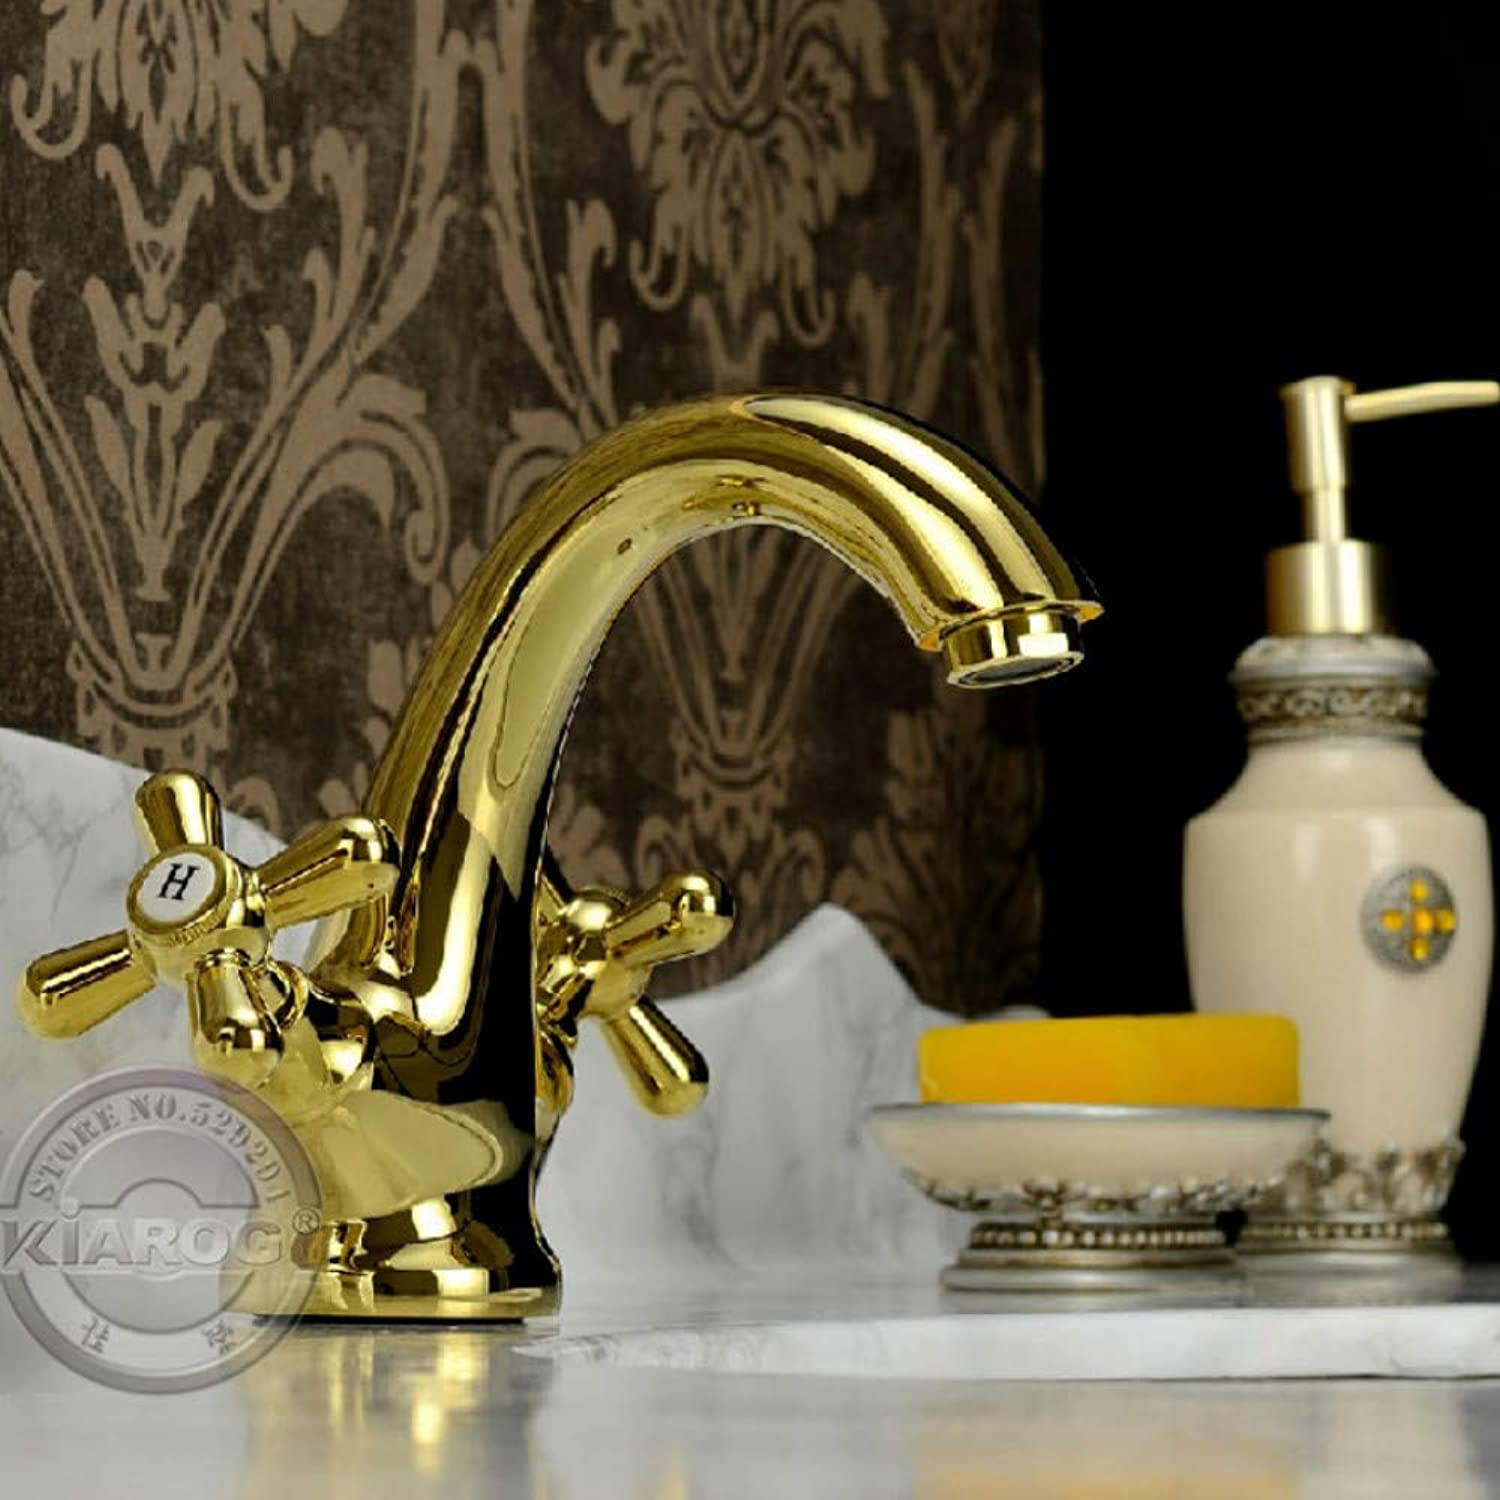 Lddpl New Style Claw-Foot Bathroom Basin Sink Mixer Tap.gold Double Handle Bathroom Basin Faucet.Single Hole gold Water Faucet